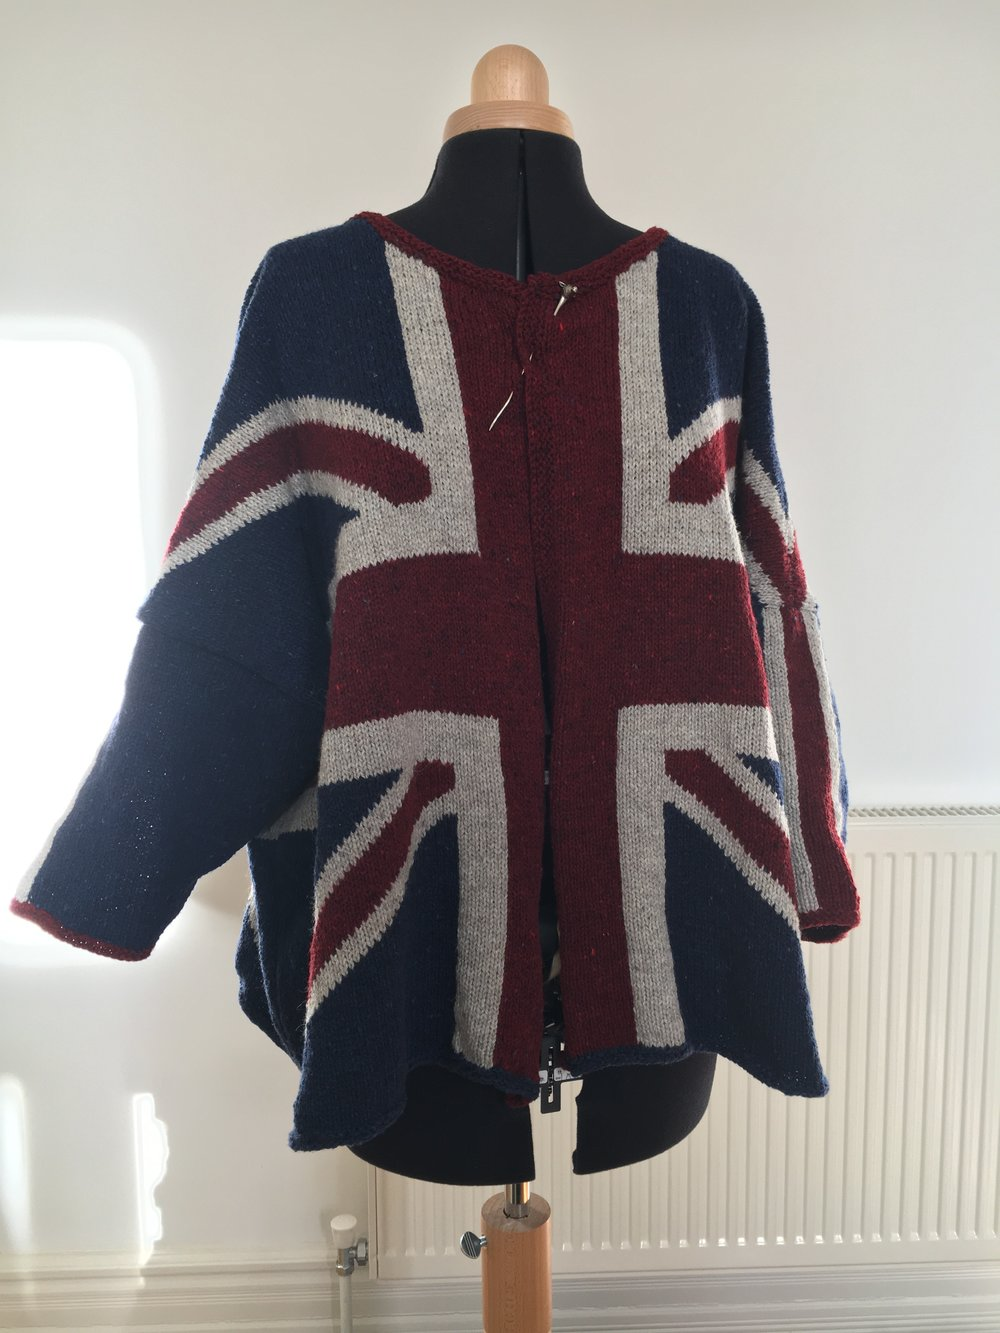 Allison's Union Jack cardigan is her first finished machine knit!